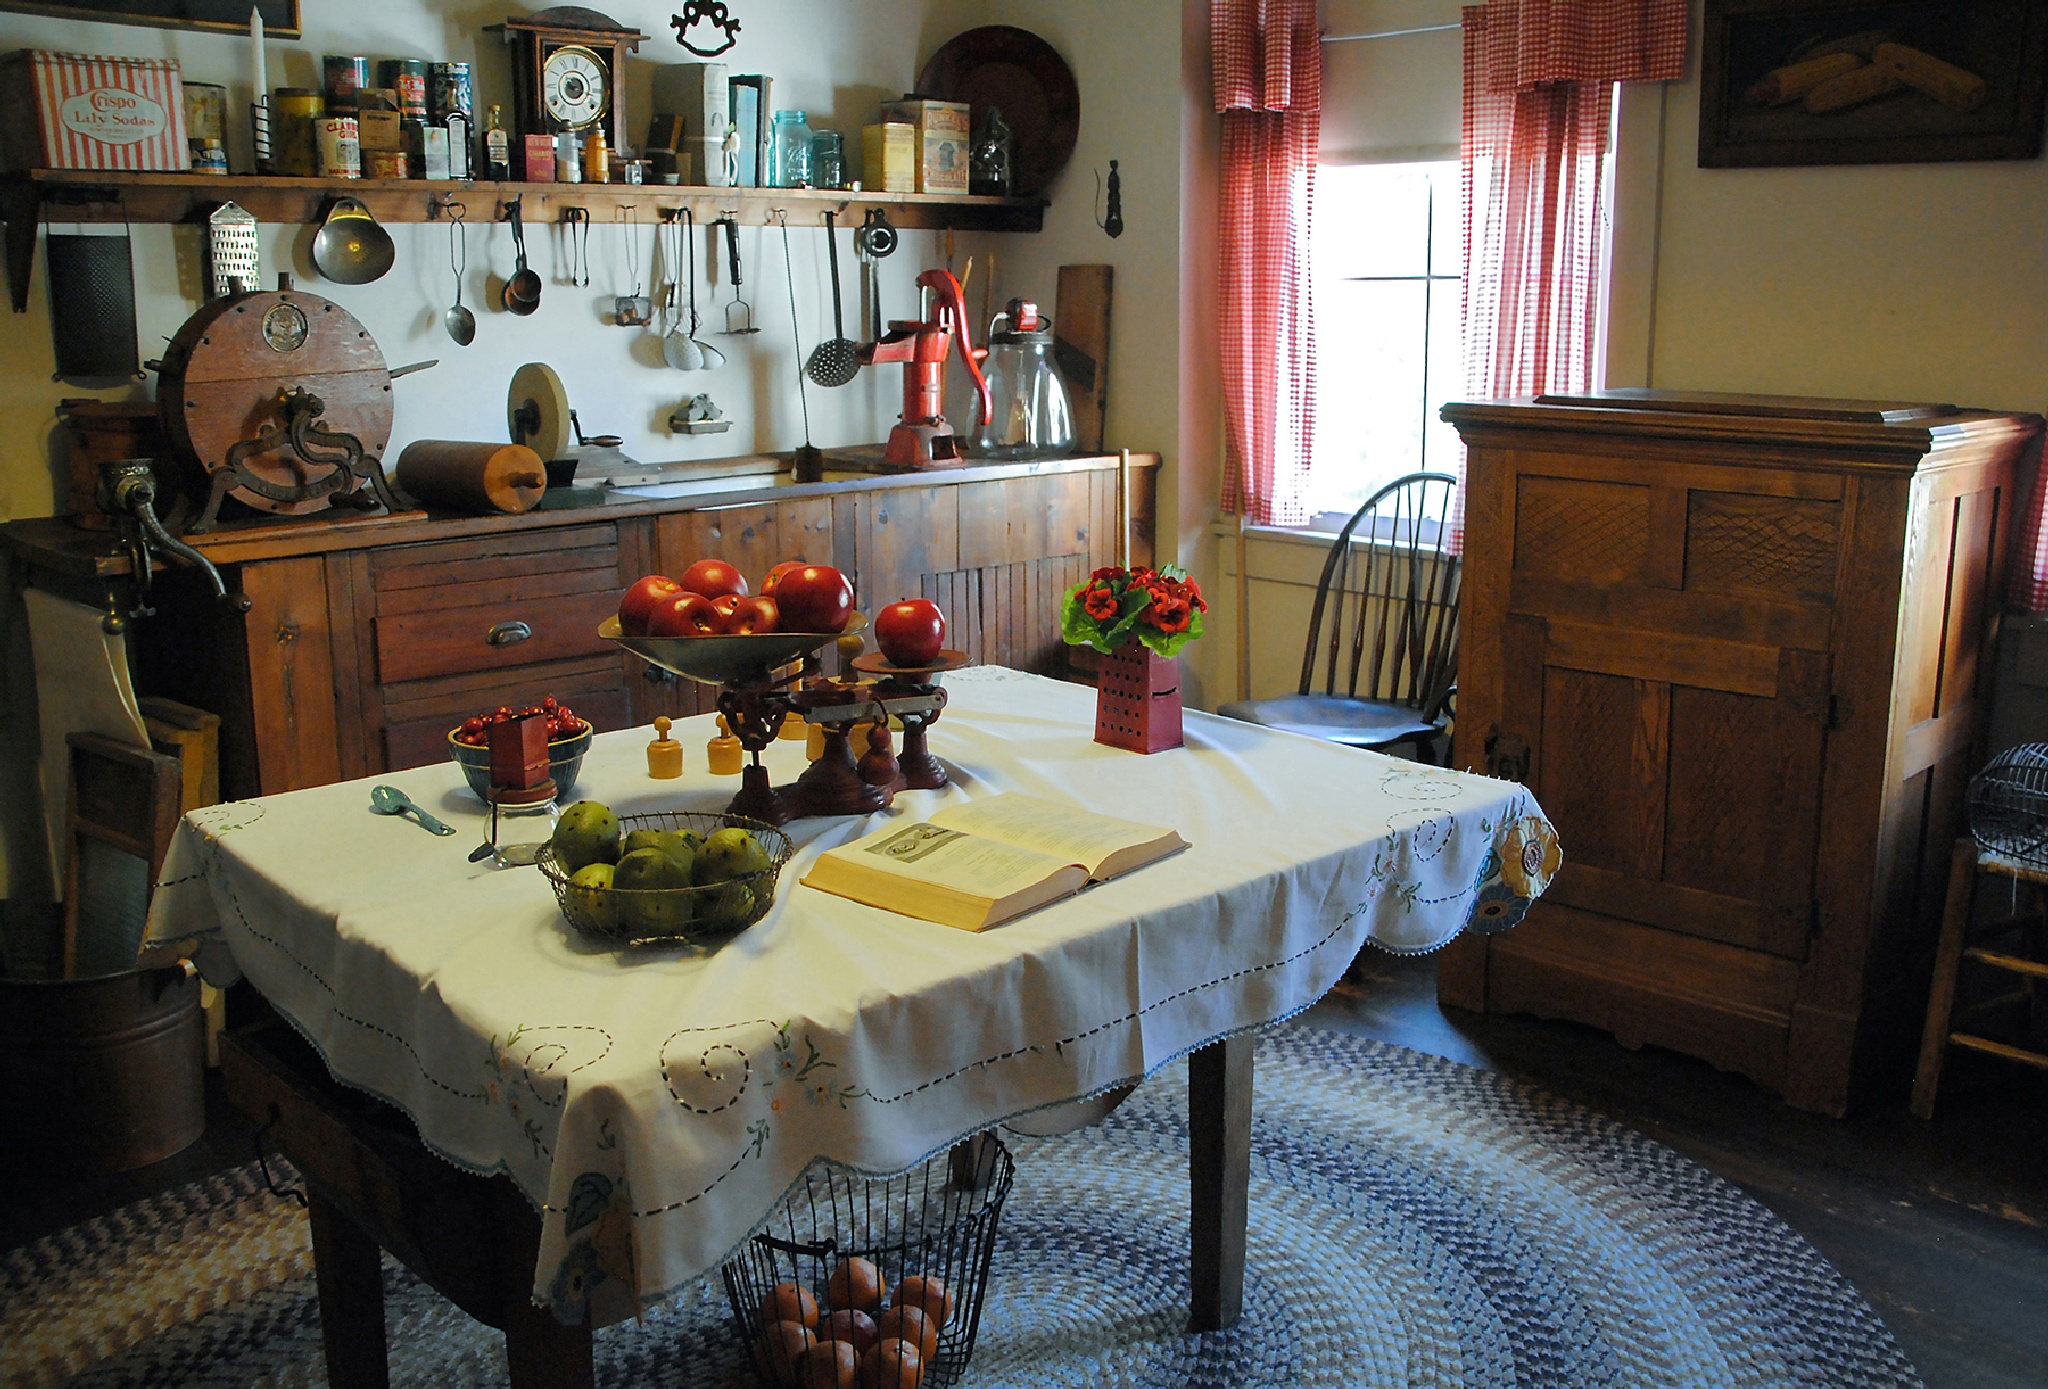 Old Fashioned Kitchen by Lormet-Images